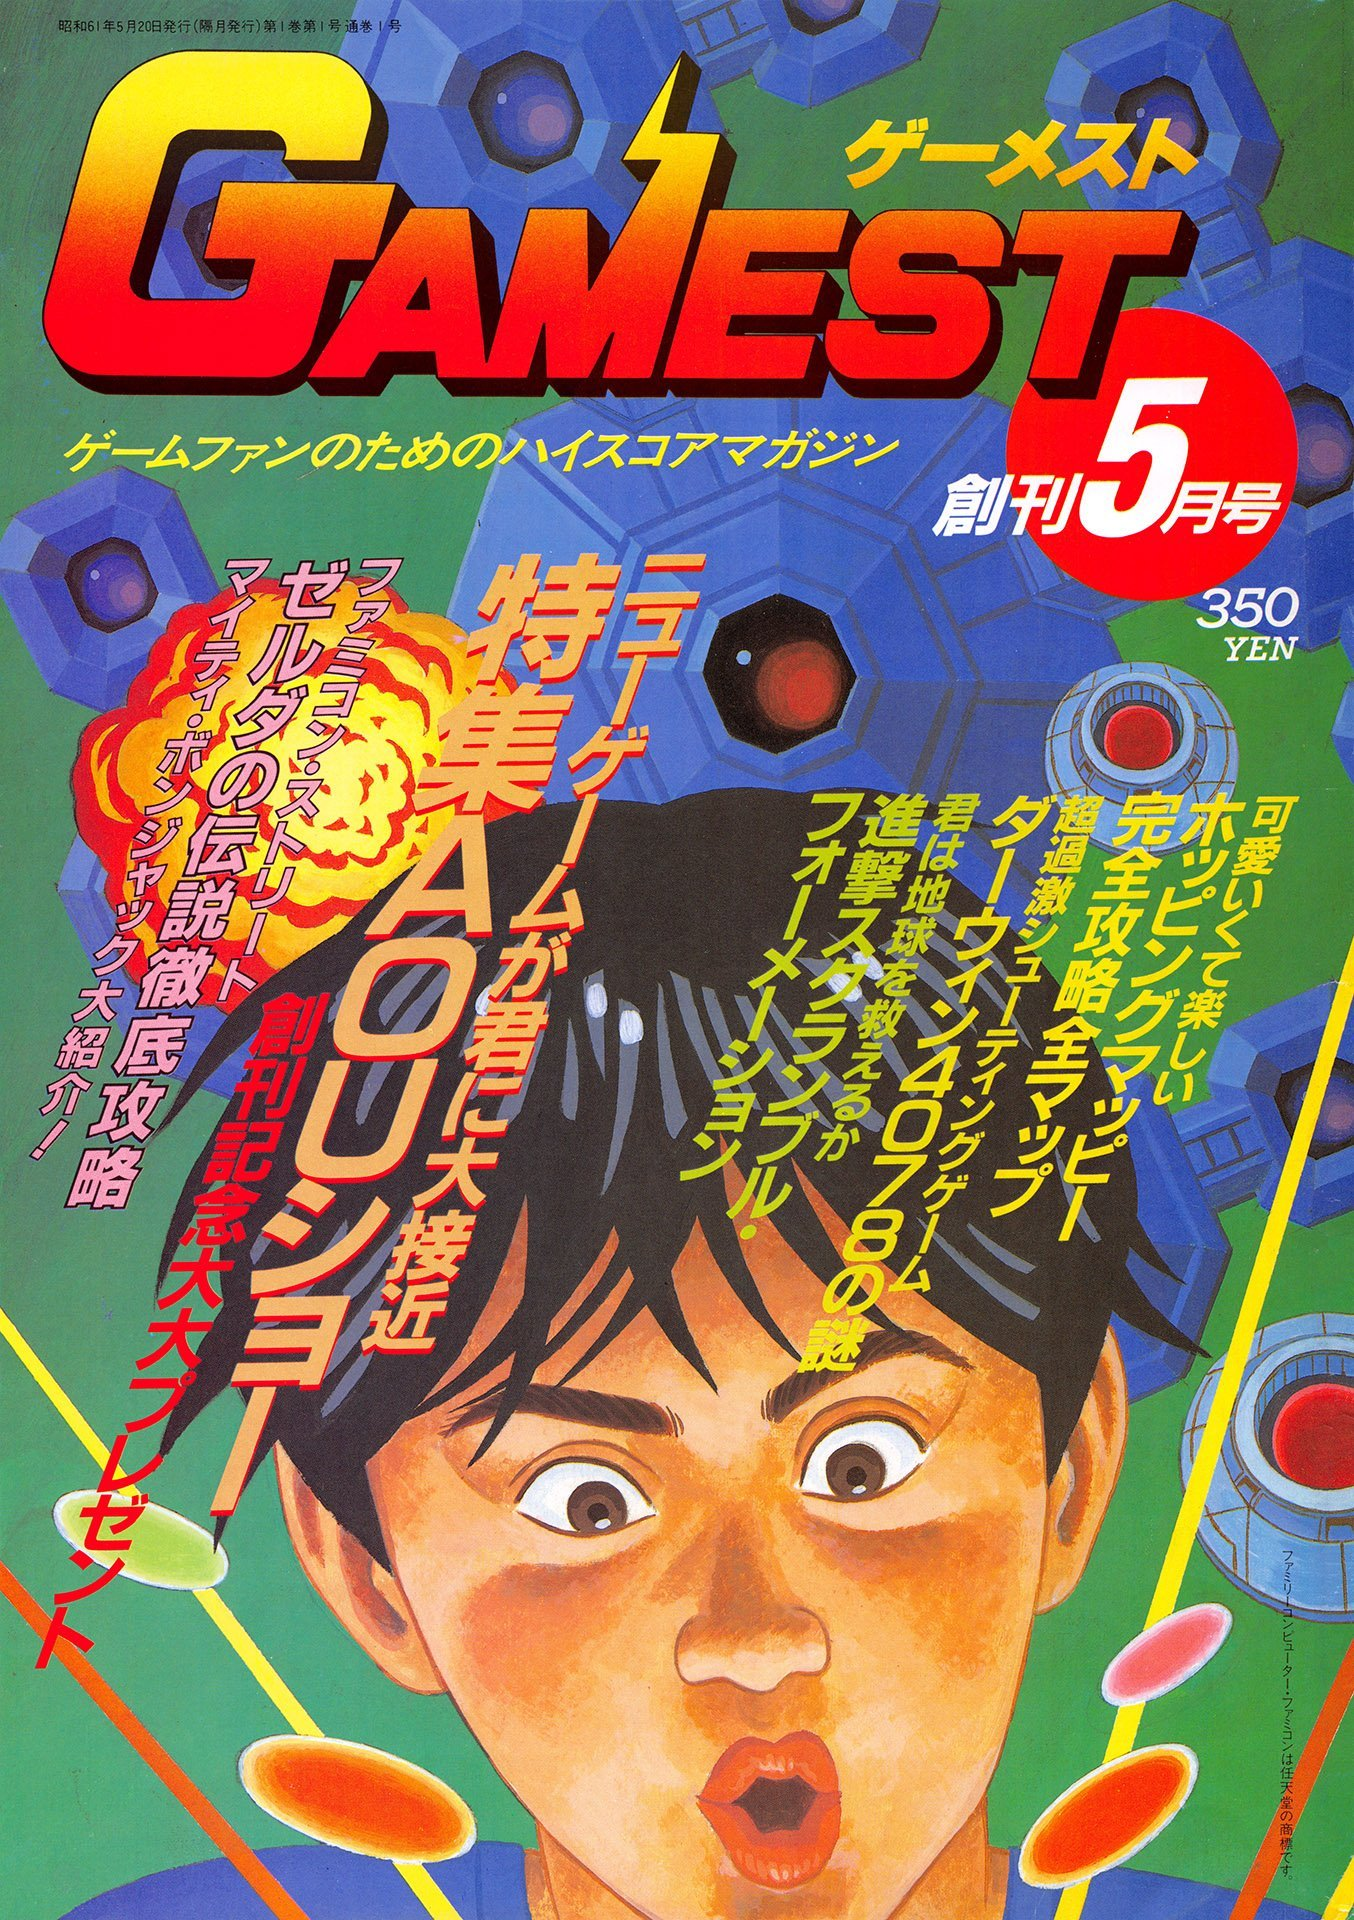 Gamest 001 (May 1986)